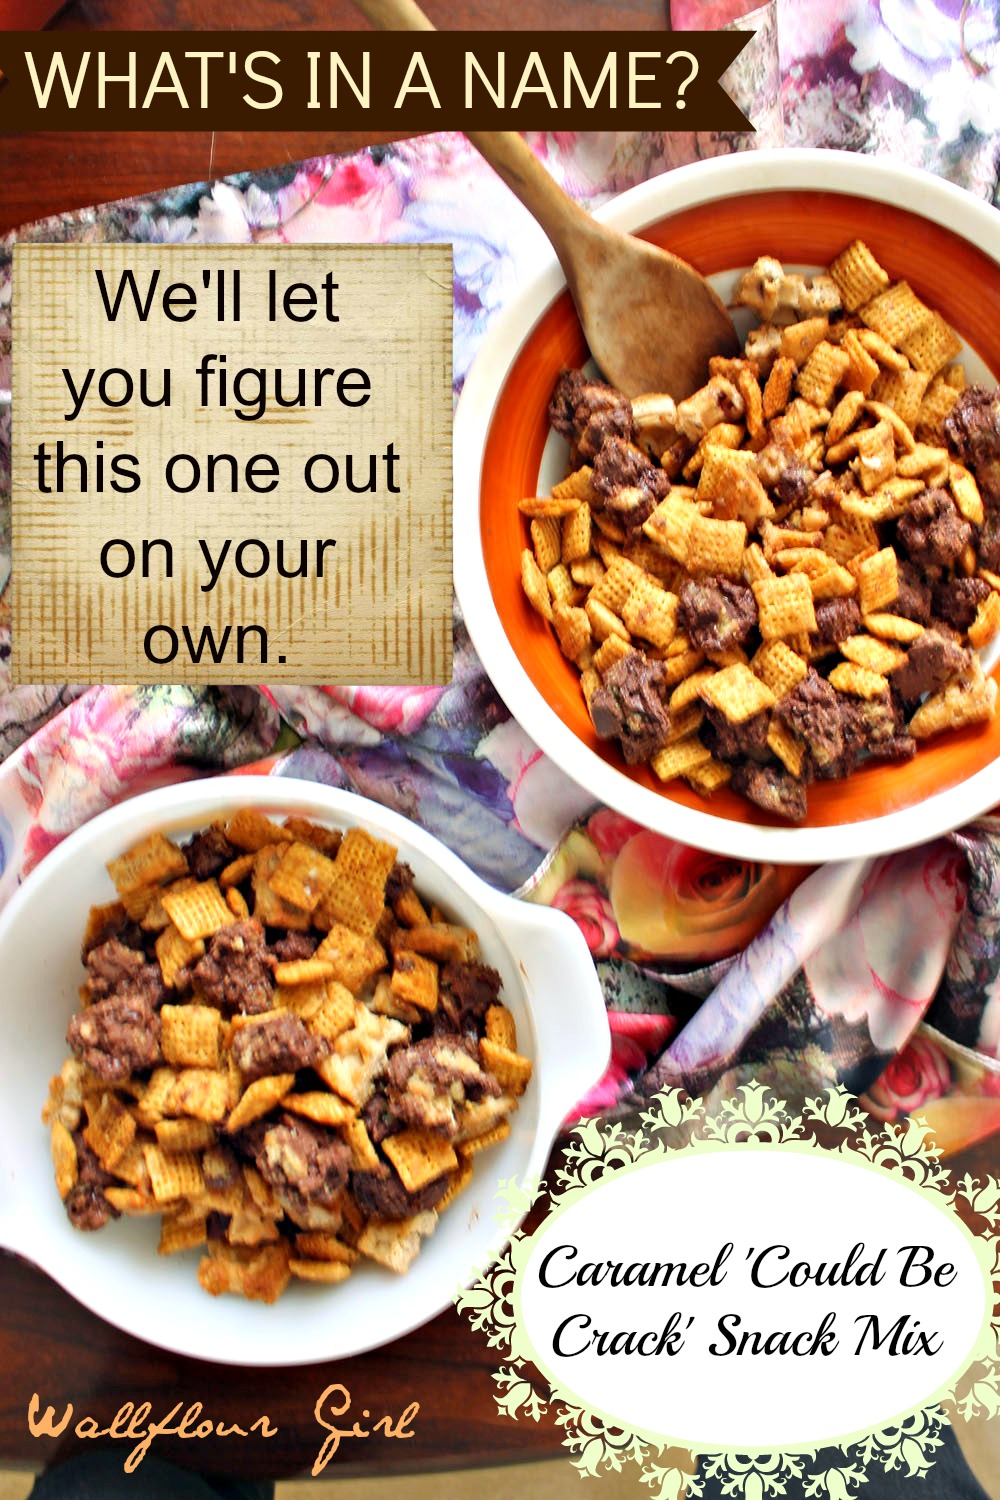 Caramel 'Could Be Crack' Snack Mix 8--111113